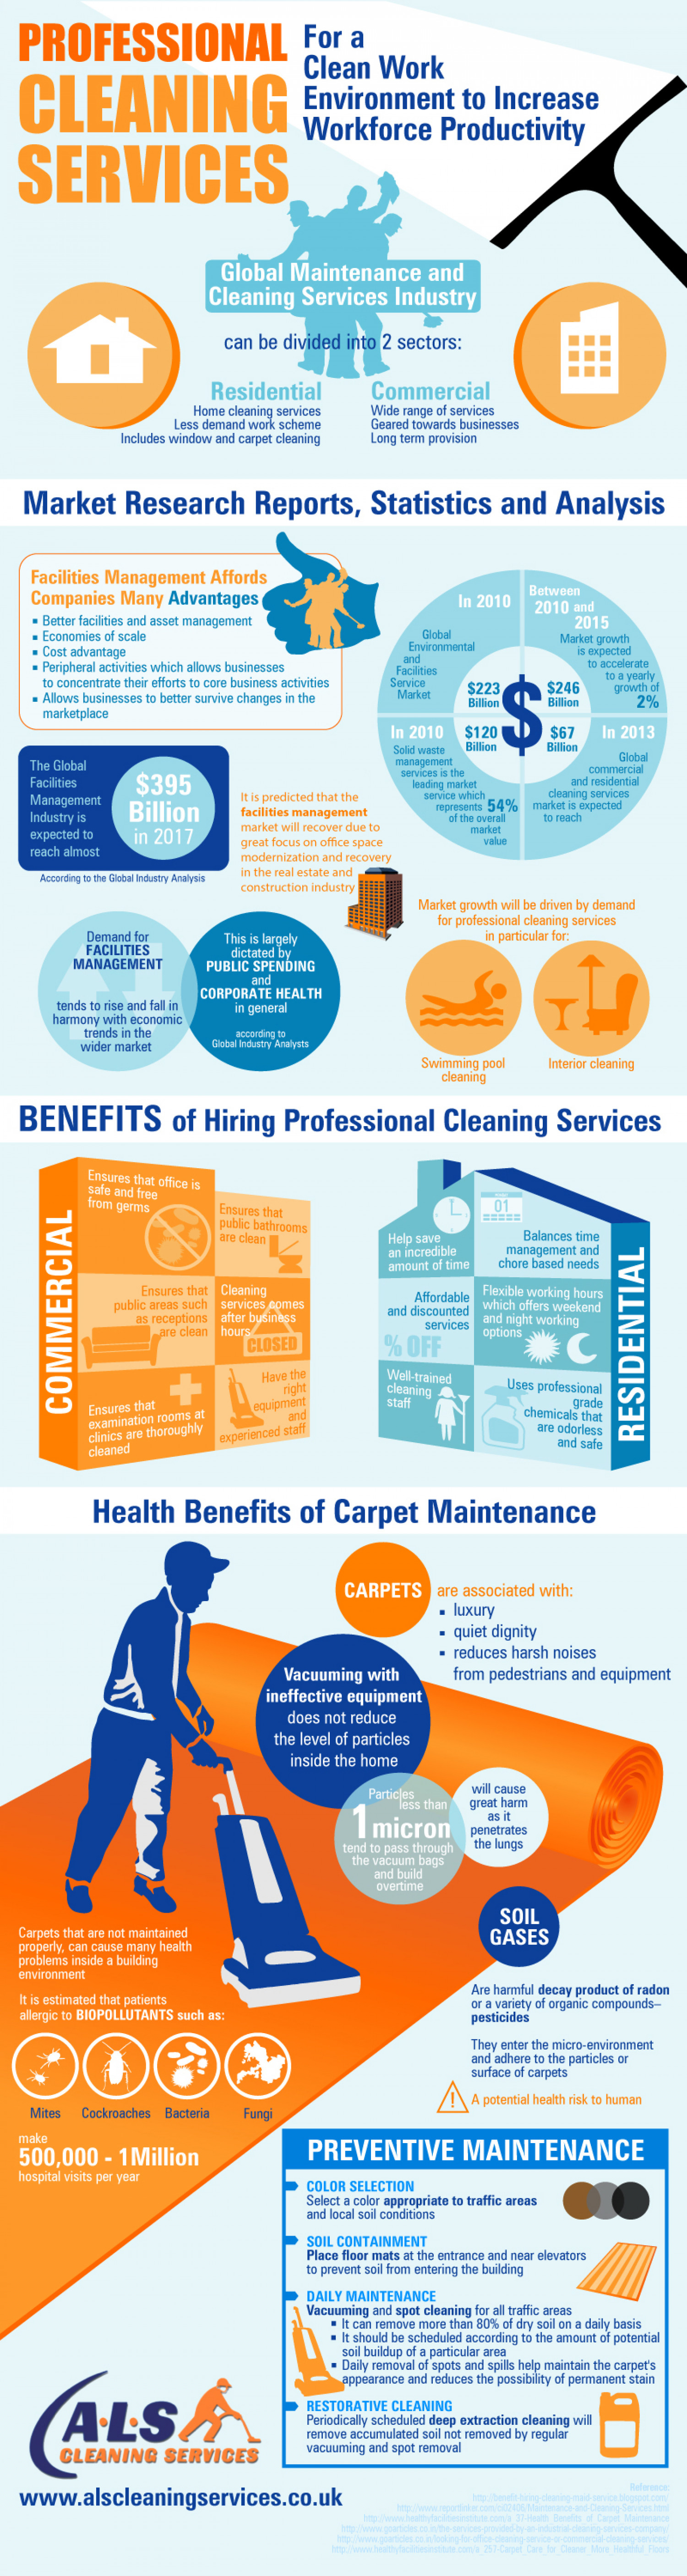 Environment Cleaning Services : Professional cleaning services for a clean work